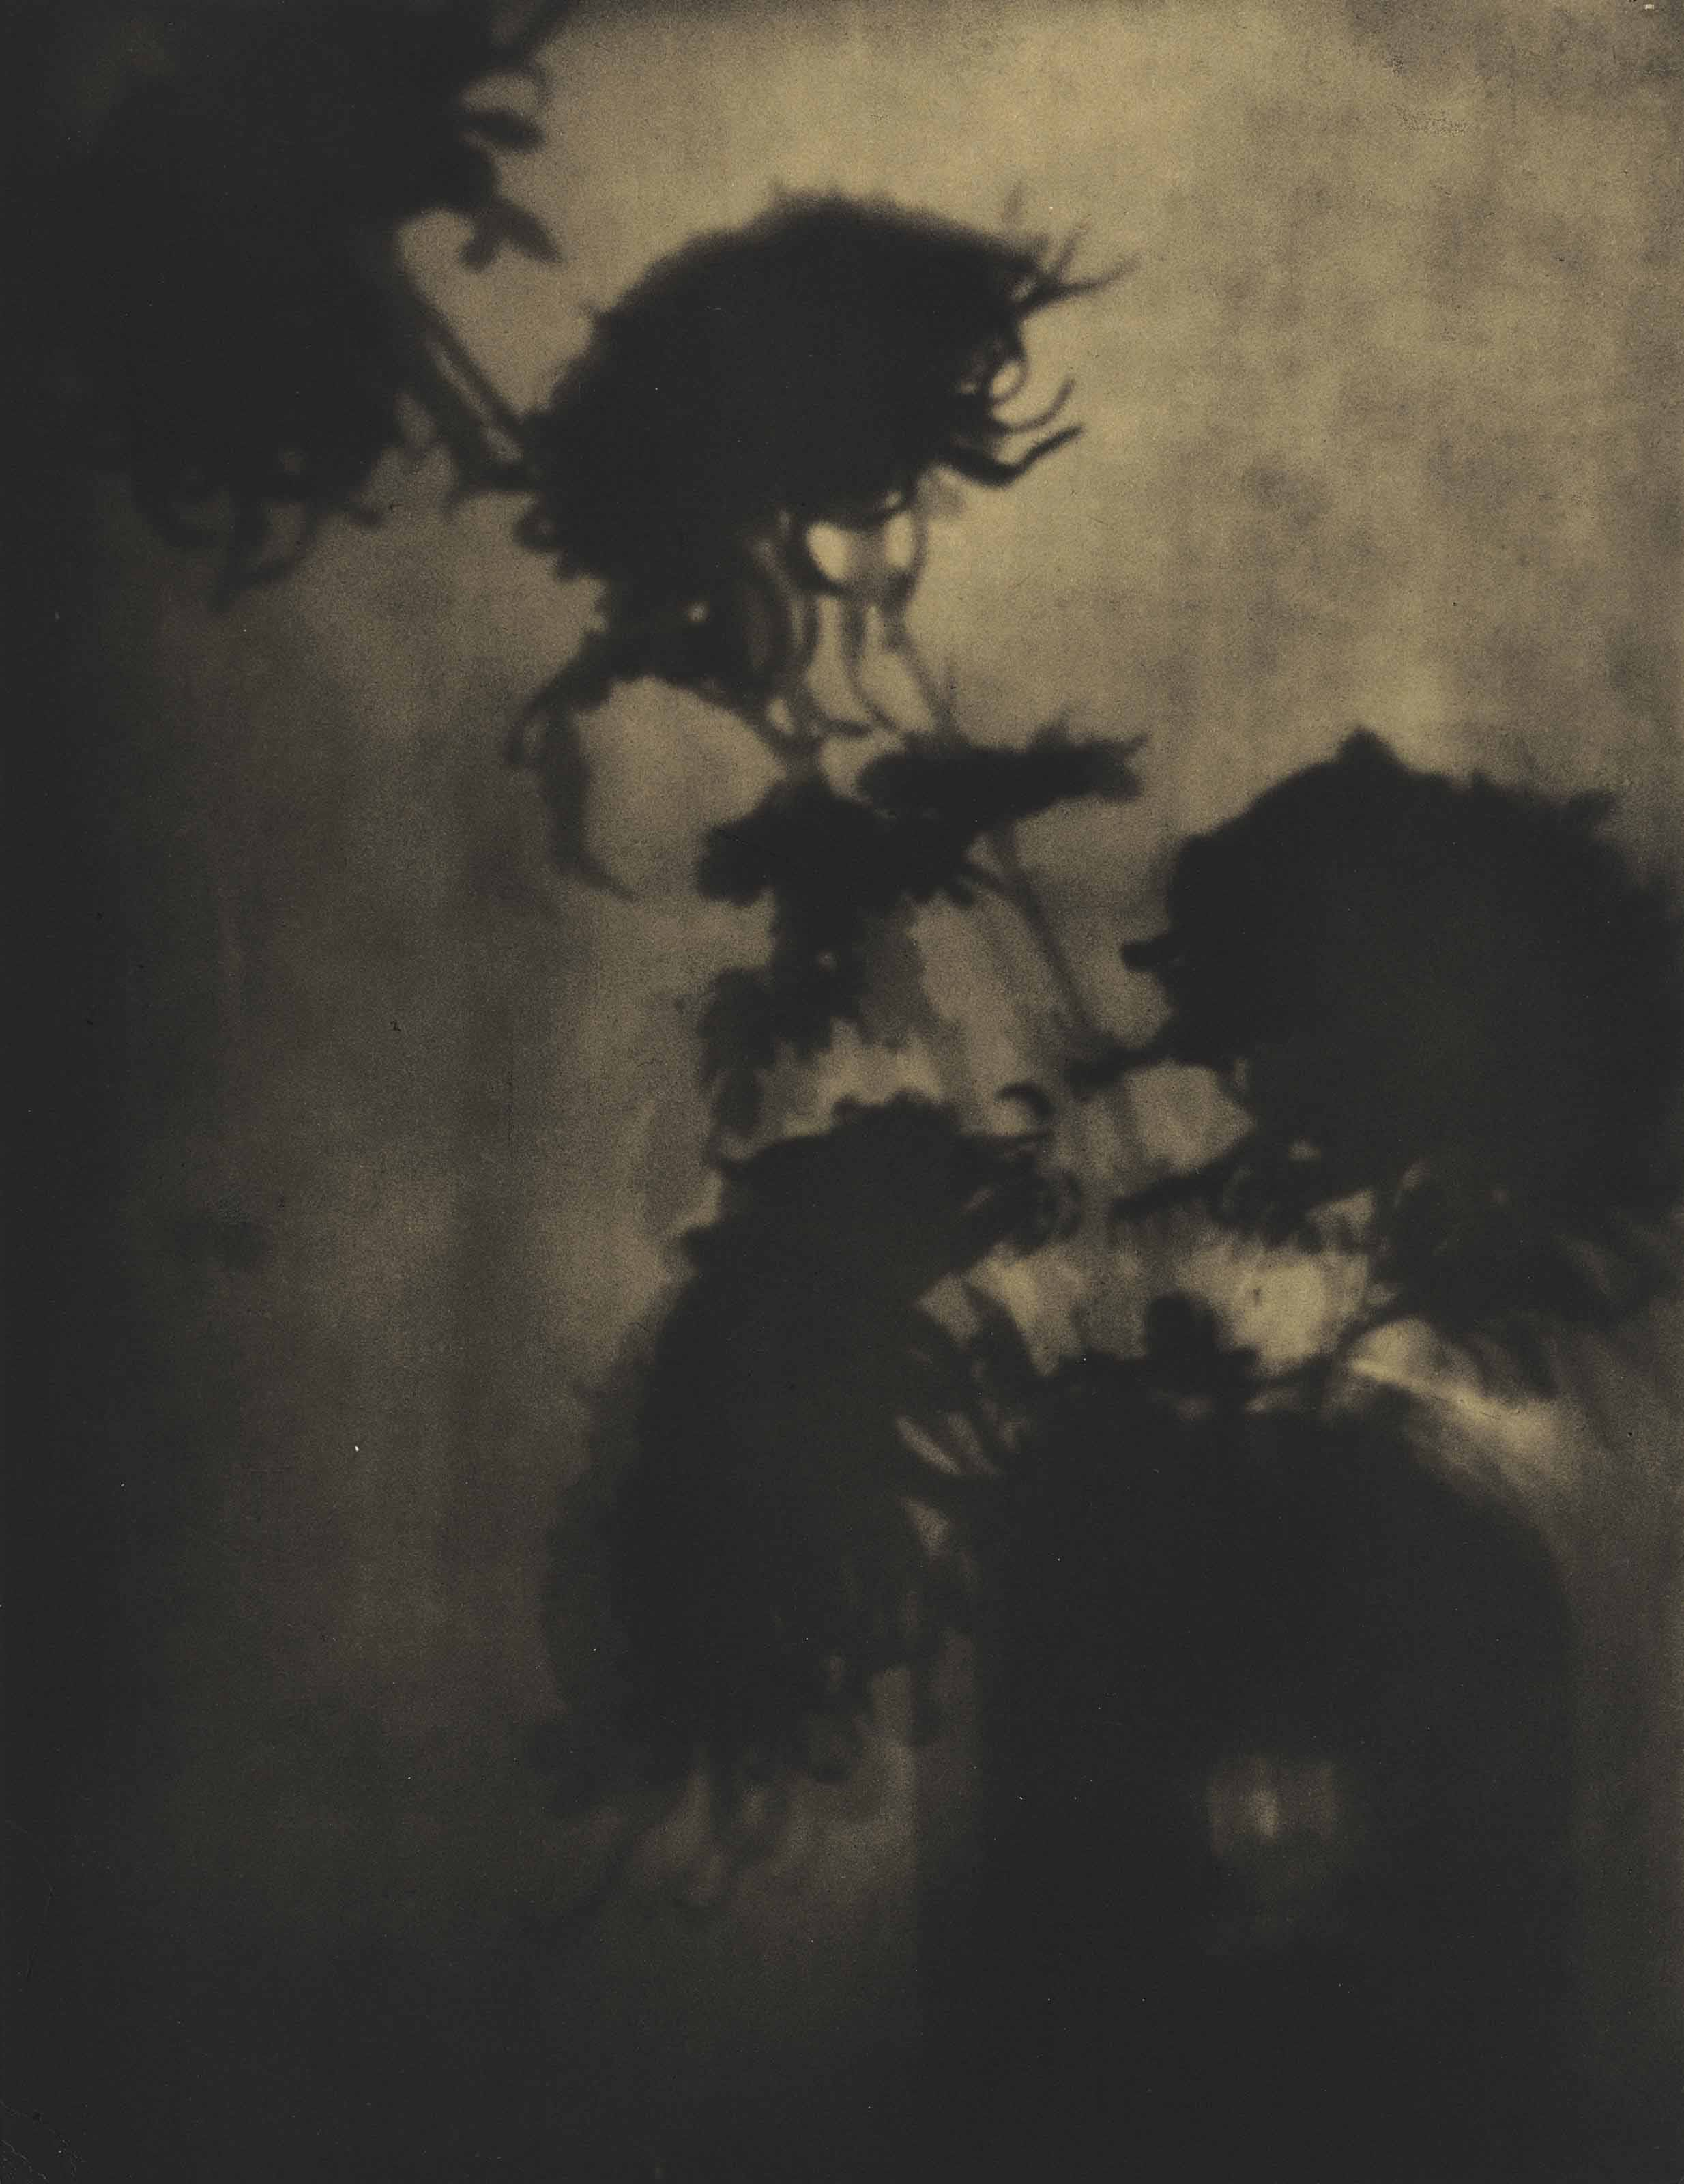 The Shadows on the Wall, Chrysanthemums, c. 1907